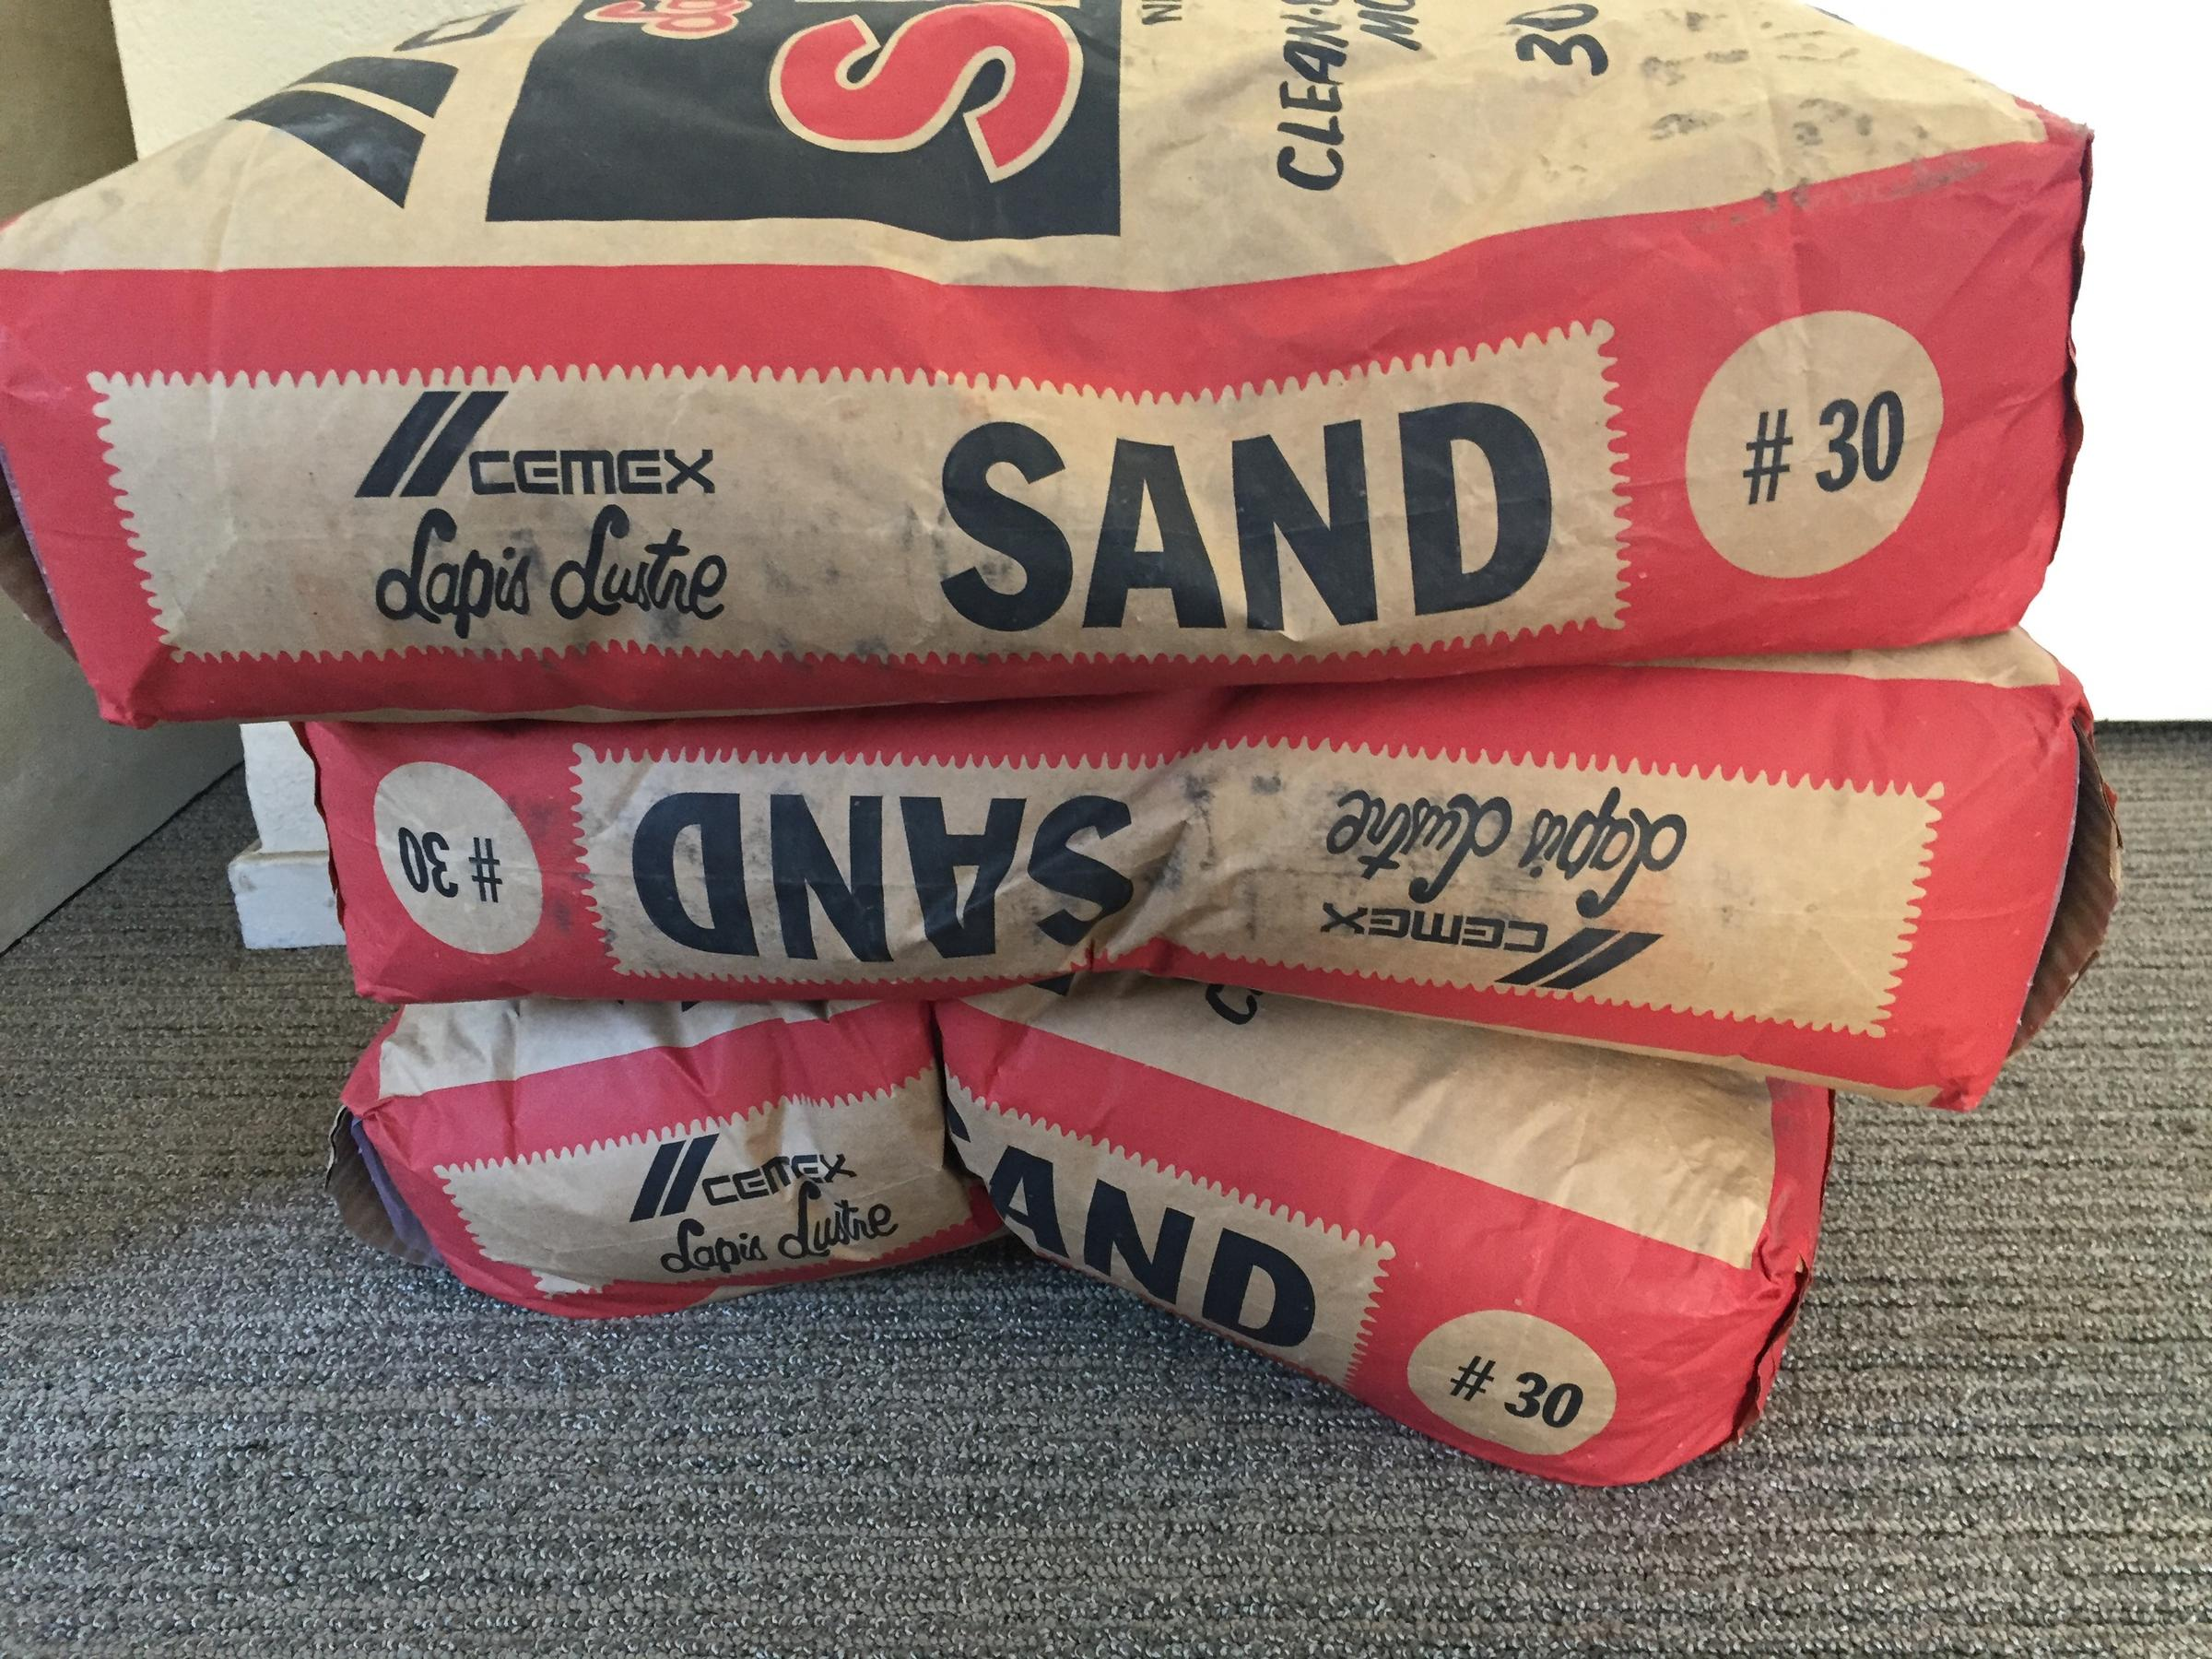 Bags Of Sand From The Cemex Plant In Marina Purchased At Local Home Depot